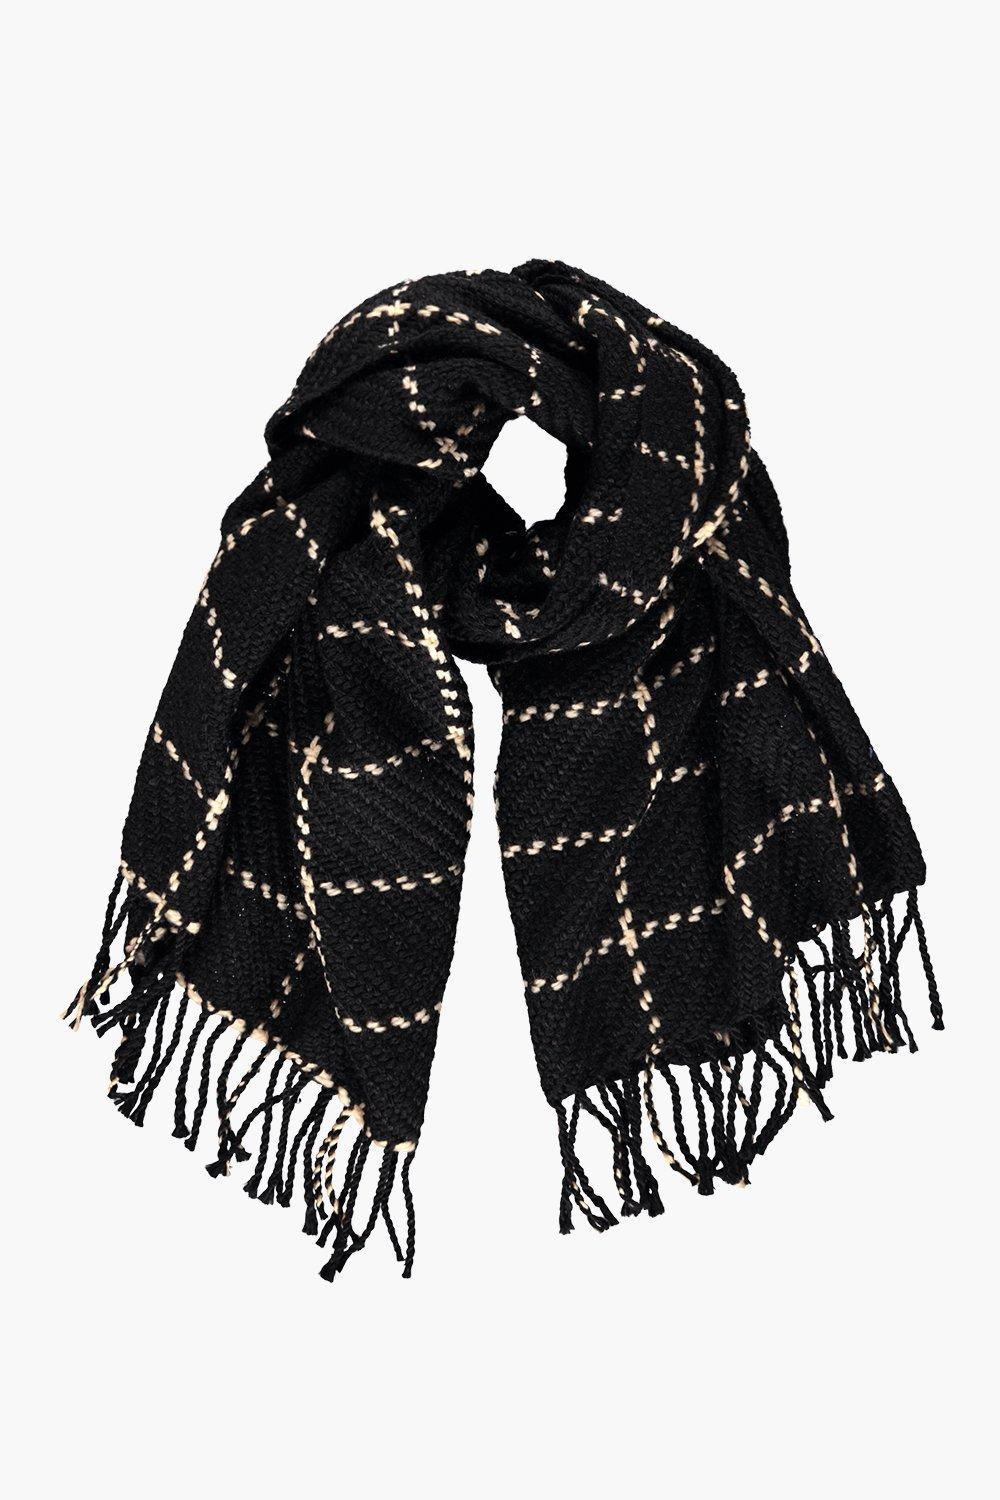 Checked Large Wrap Scarf Black - secondary colour: ivory/cream; predominant colour: black; occasions: casual, creative work; type of pattern: standard; style: regular; size: large; material: knits; embellishment: fringing; pattern: checked/gingham; season: a/w 2016